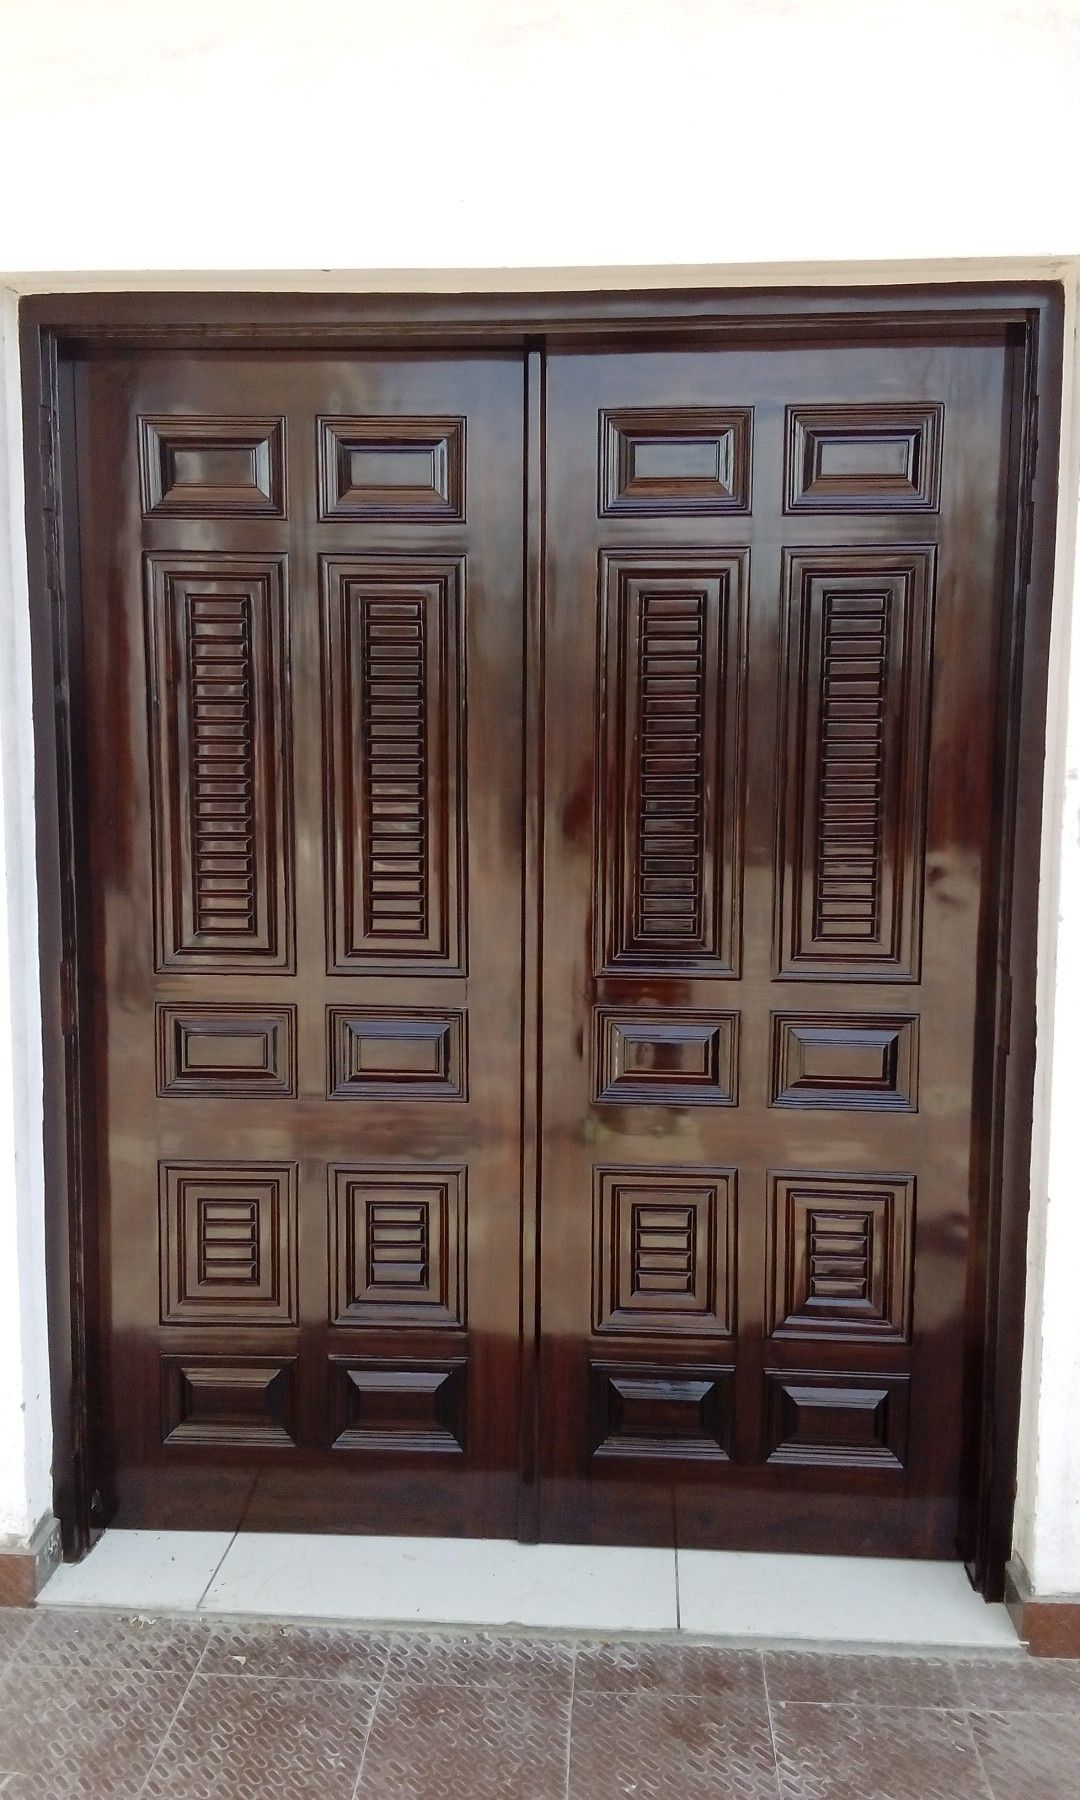 Pin By Husan Lal On Deghine Door With Images Home Decor Decor Doors